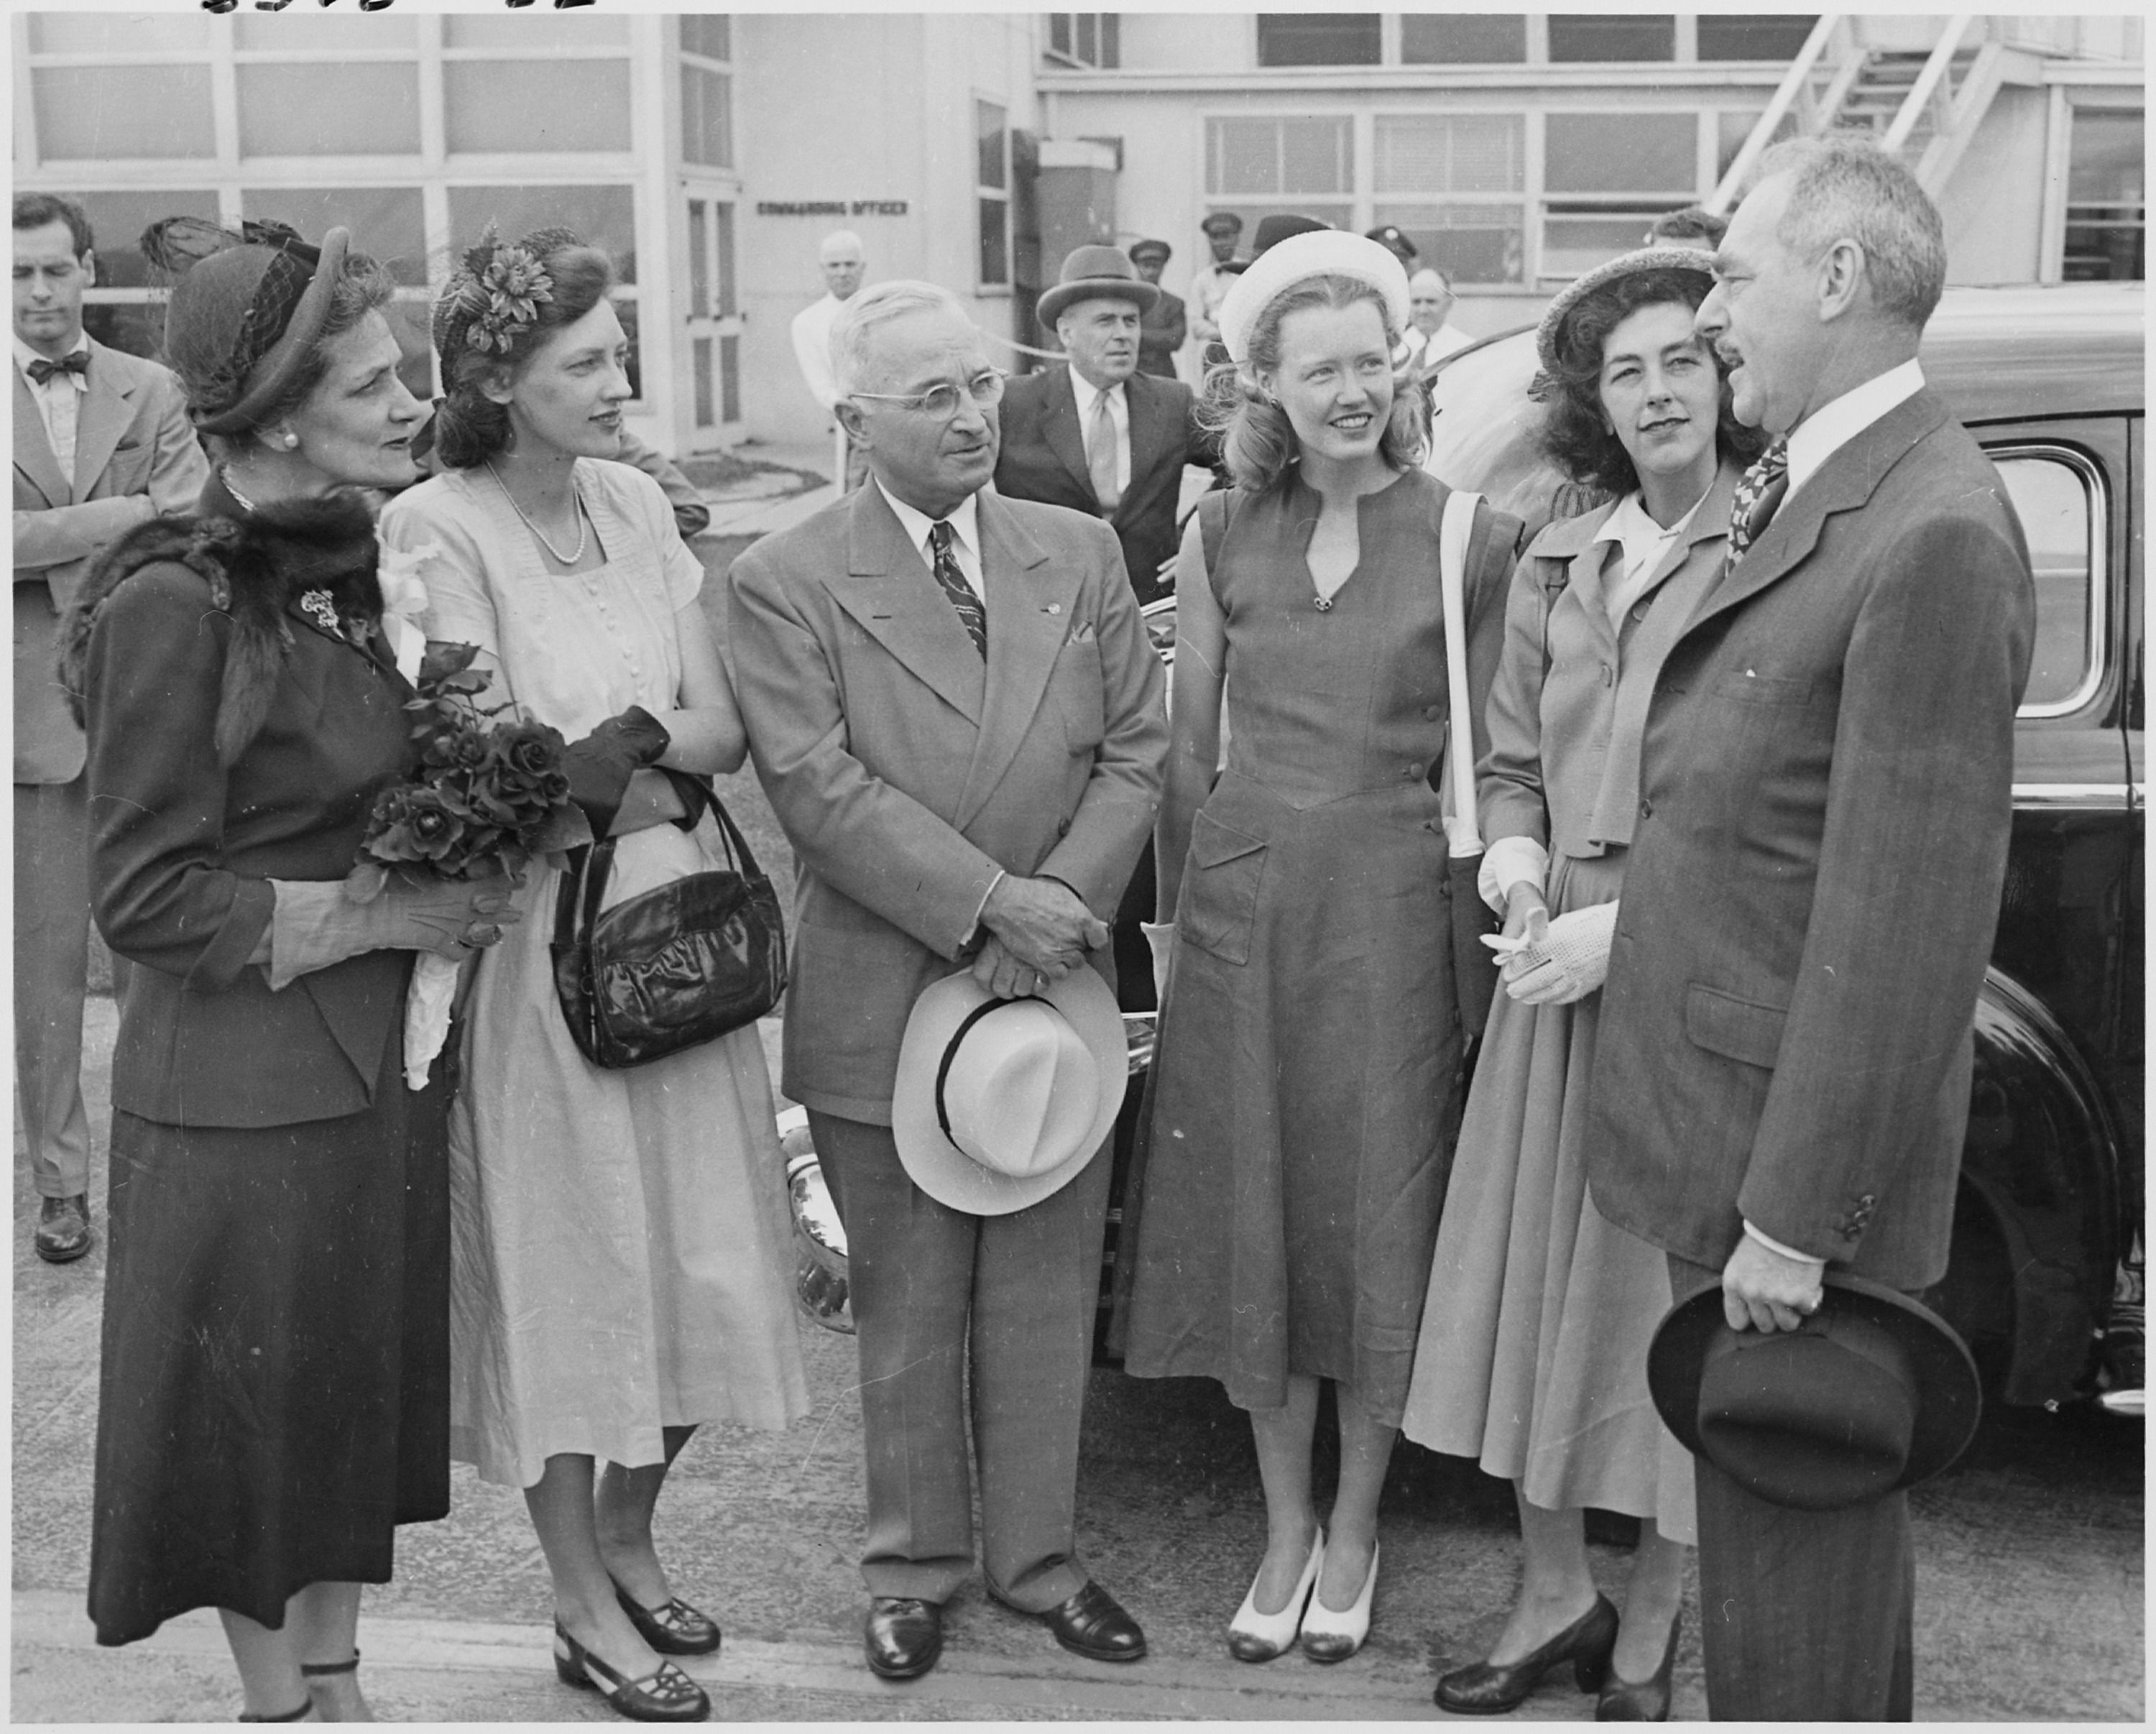 Photograph_of_President_Truman_with_Secretary_of_State_Dean_Acheson_and_members_of_his_family,_at_the_airport_in..._-_NARA_-_200116.jpg (JPEG Image, 3000×2413 pixels) - Scaled (26%)